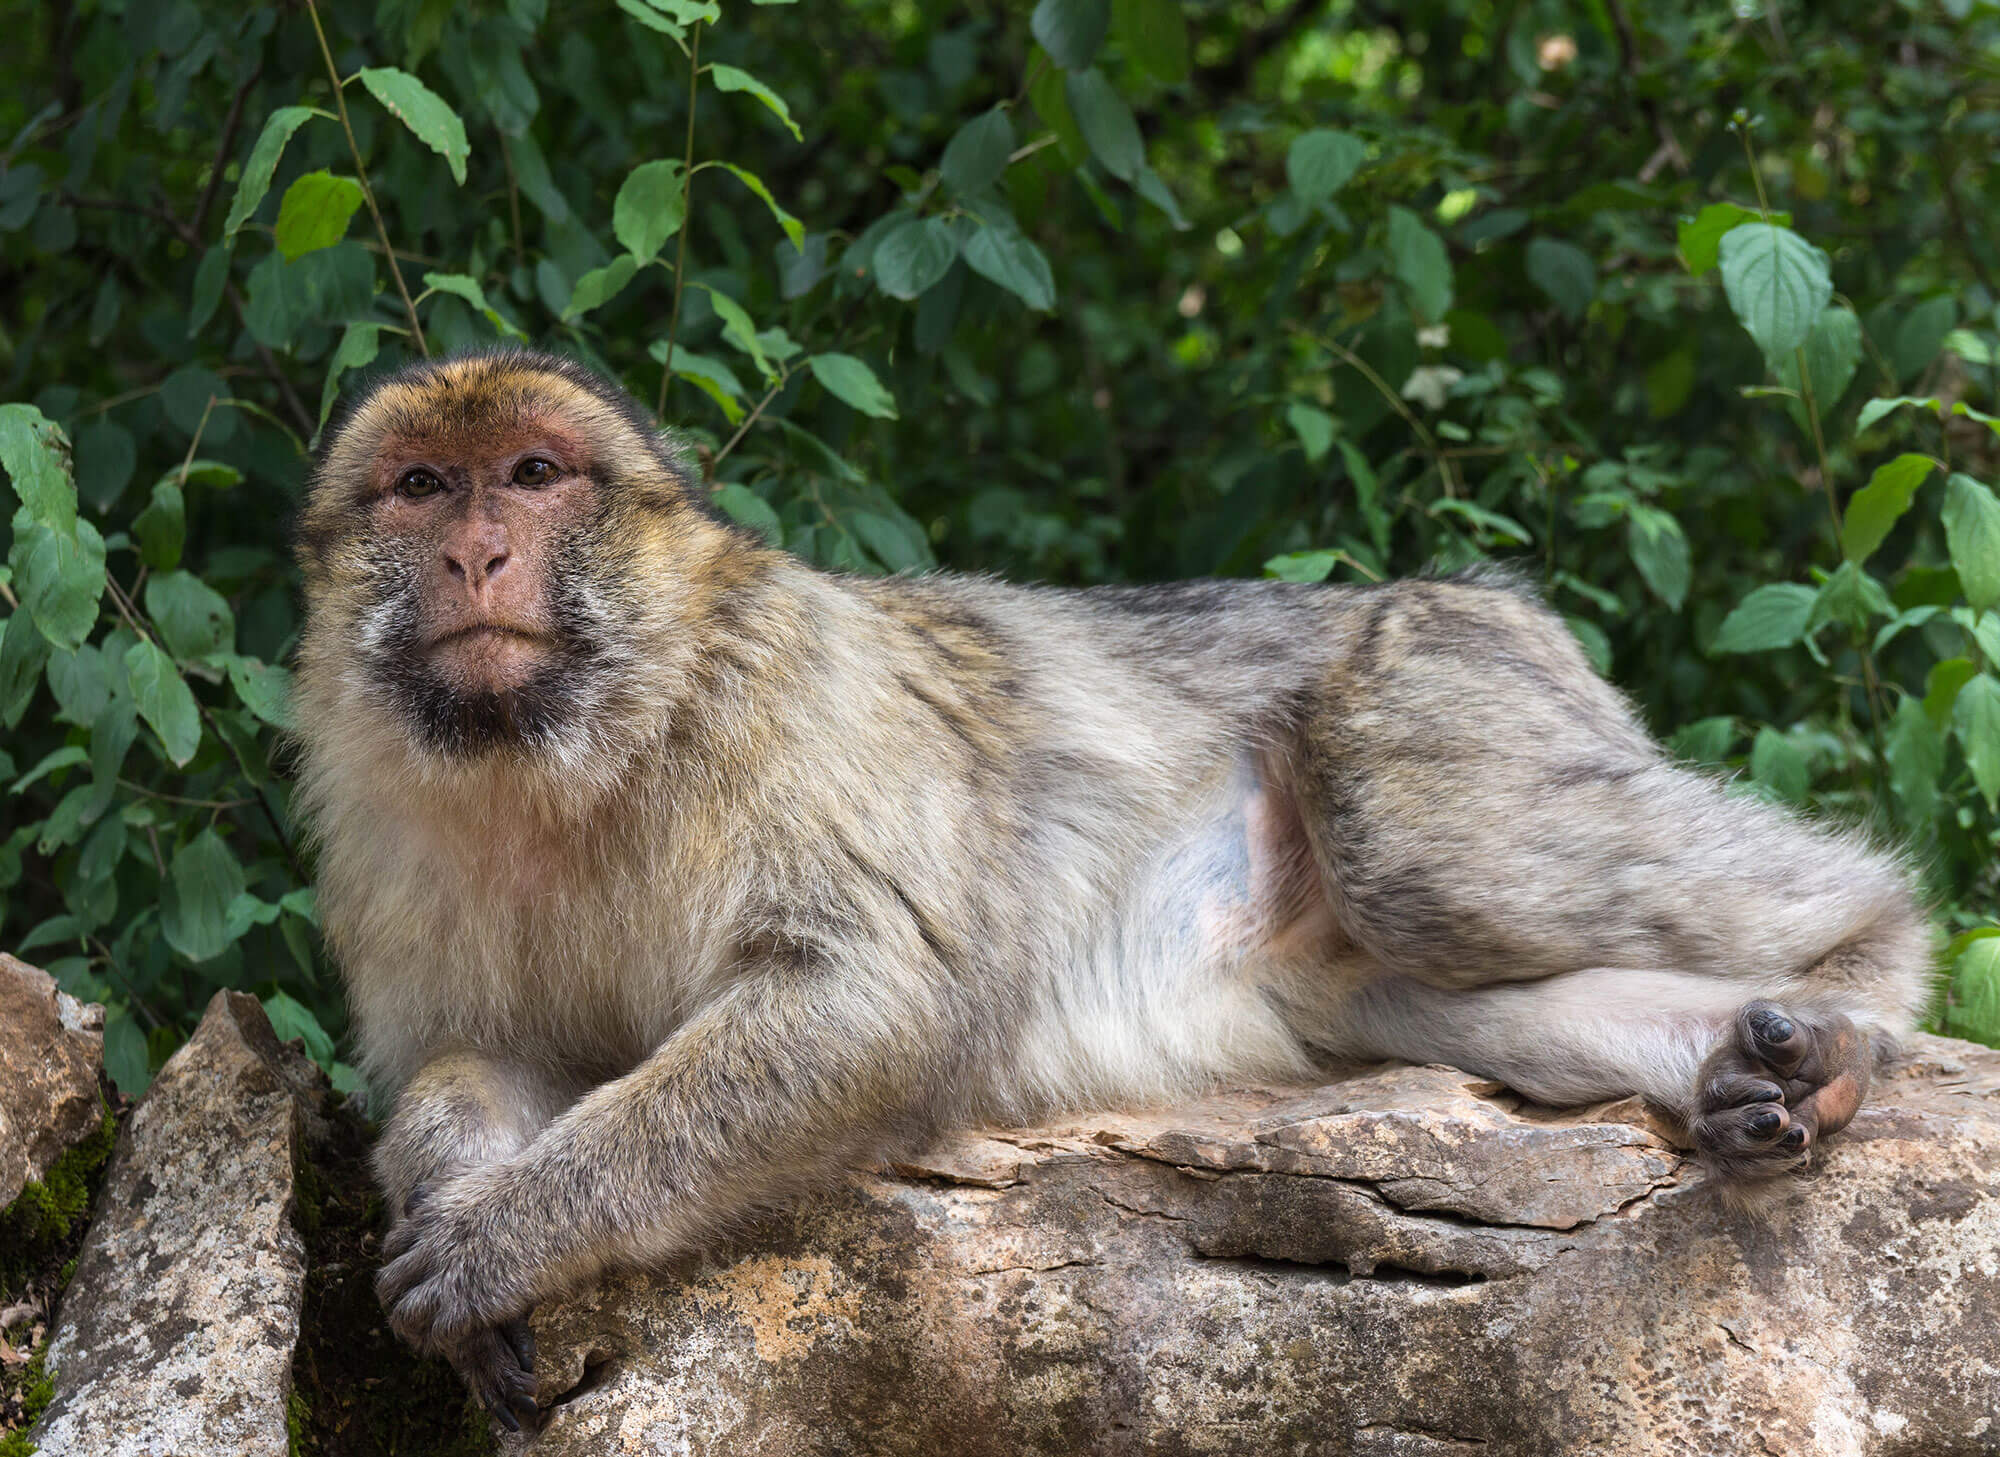 A Lazy Barbary Macaque Relaxing on Some Rocks in Southern France's Rocamadour Monkey Park, Europe